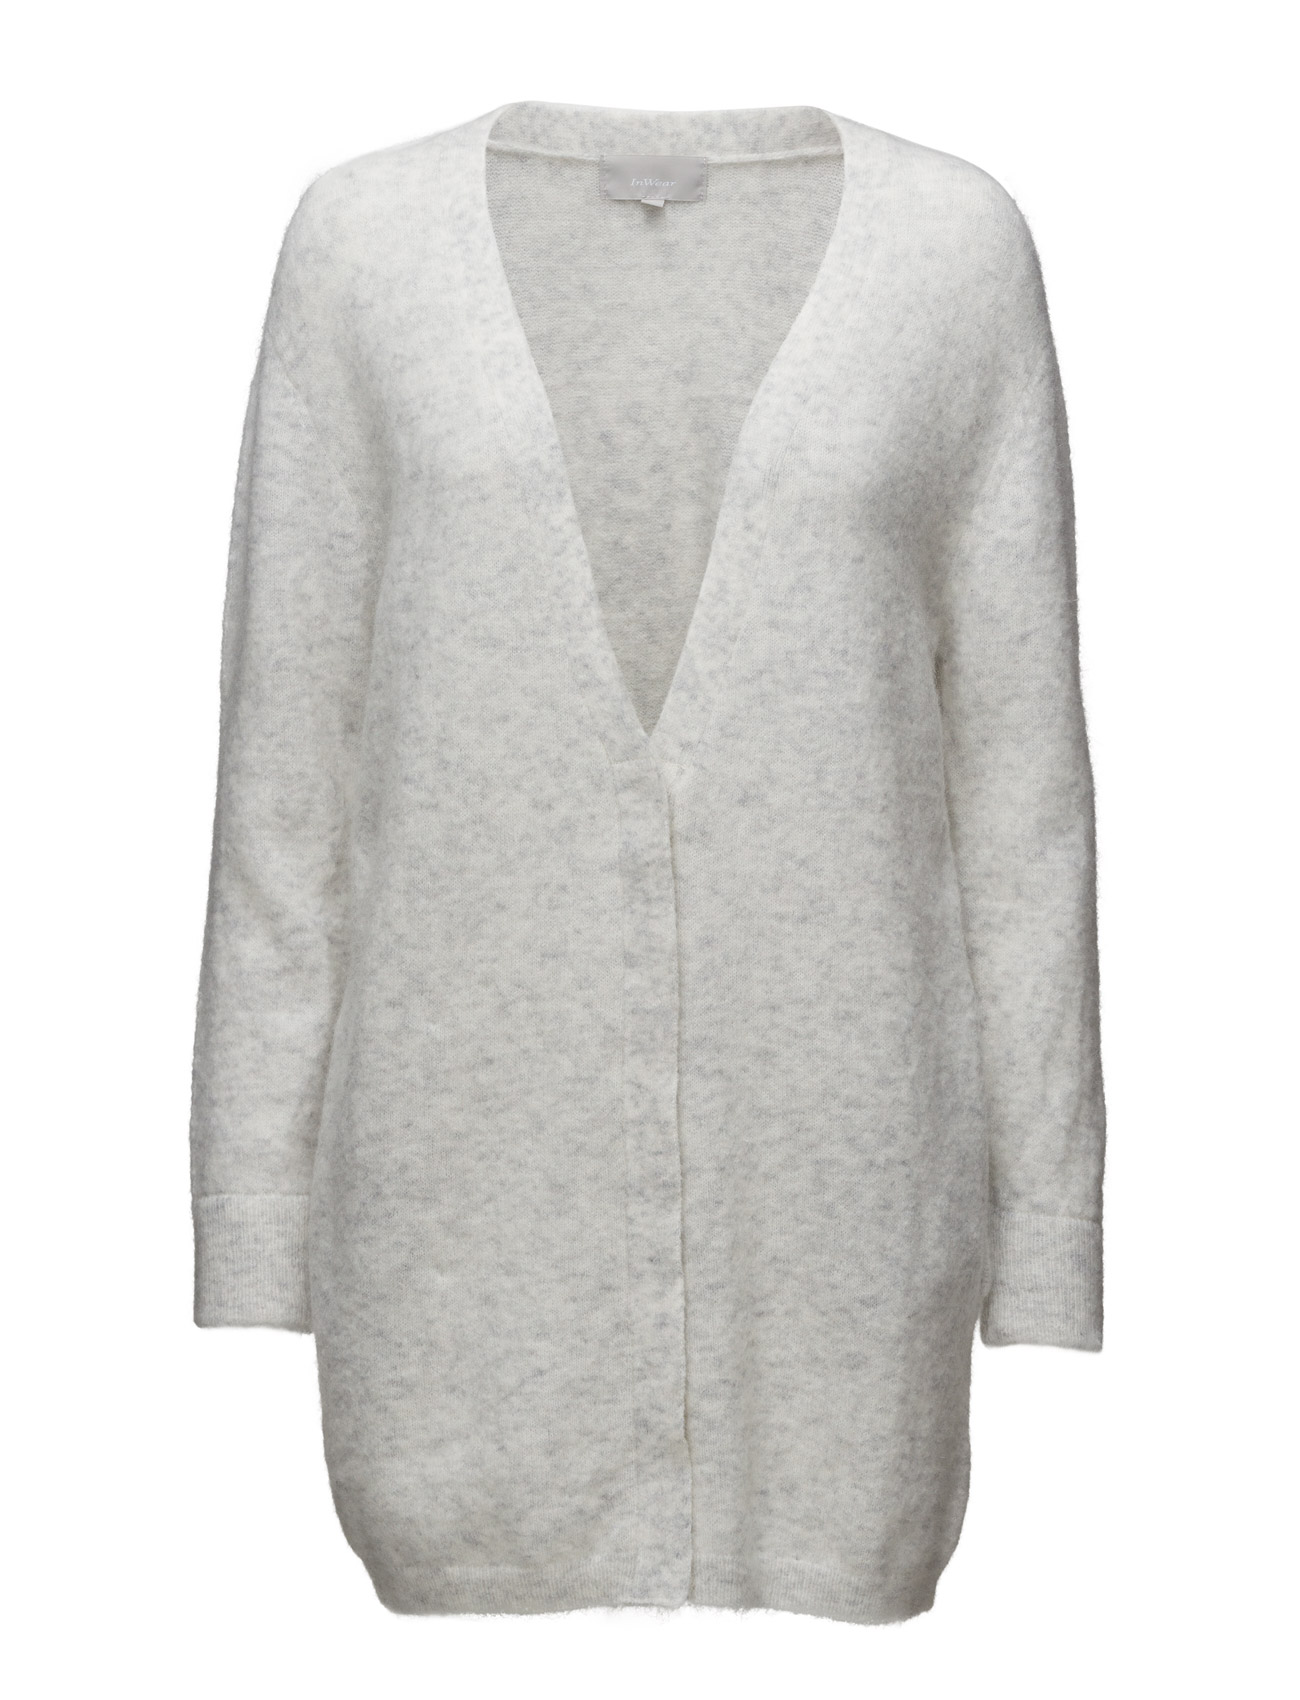 InWear Panula Cardigan - LIGHT GREY MELANGE